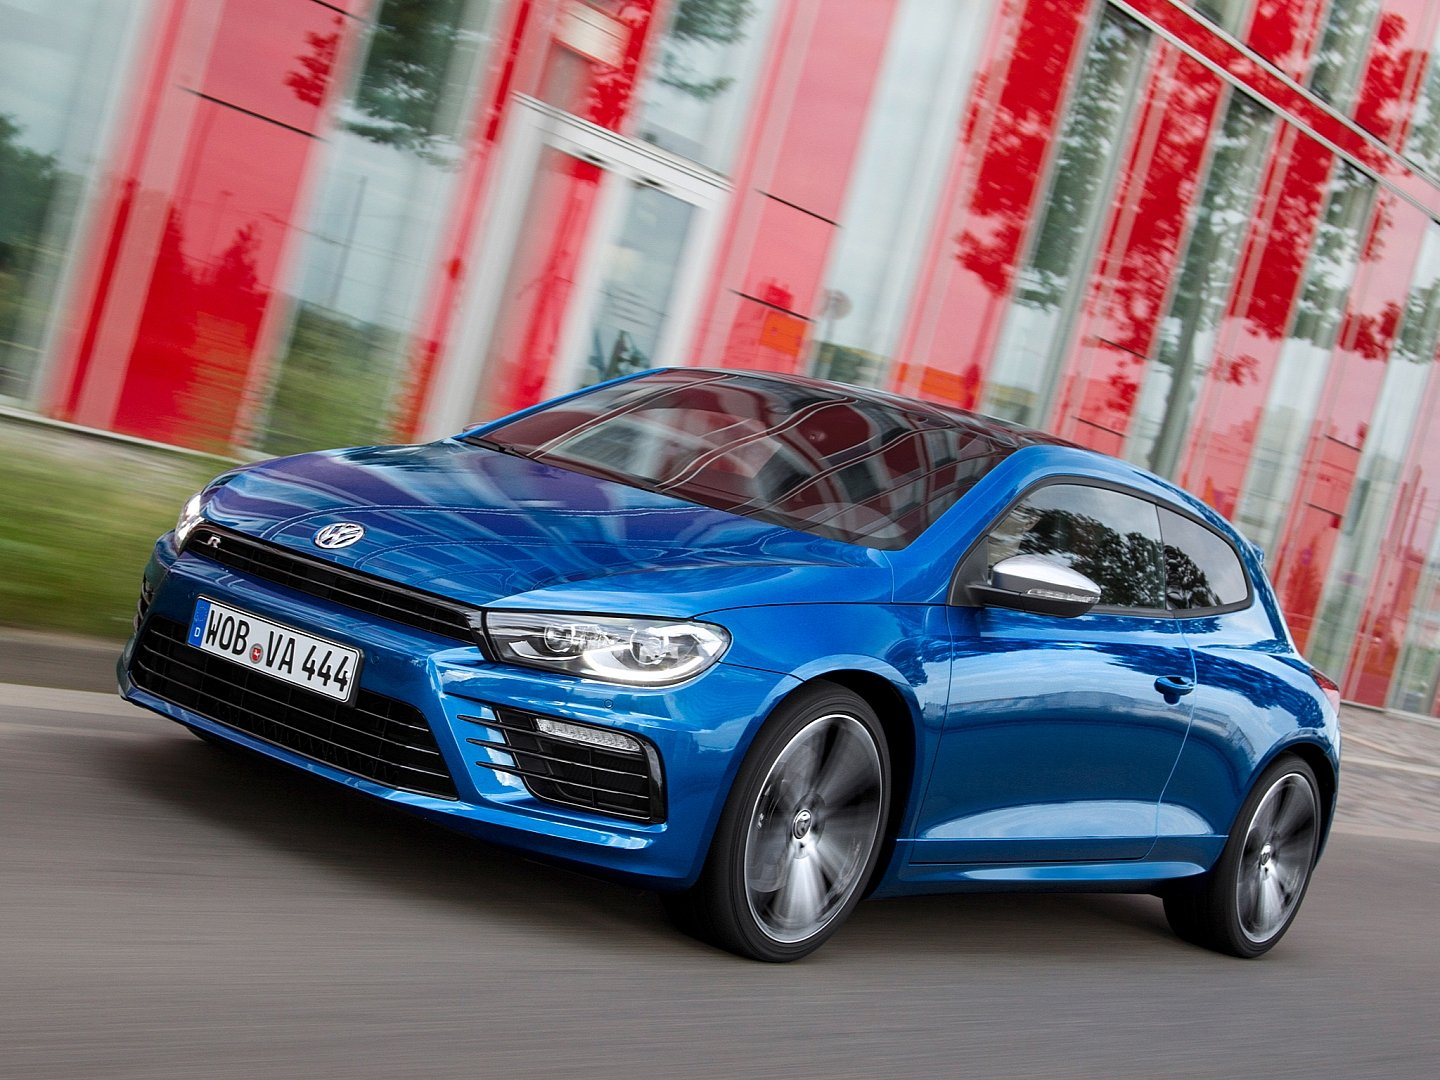 scirocco-radditional-20-ps-accelerates-06-seconds-faster-to-100-km-h-than-its-predecessor-1080p-3